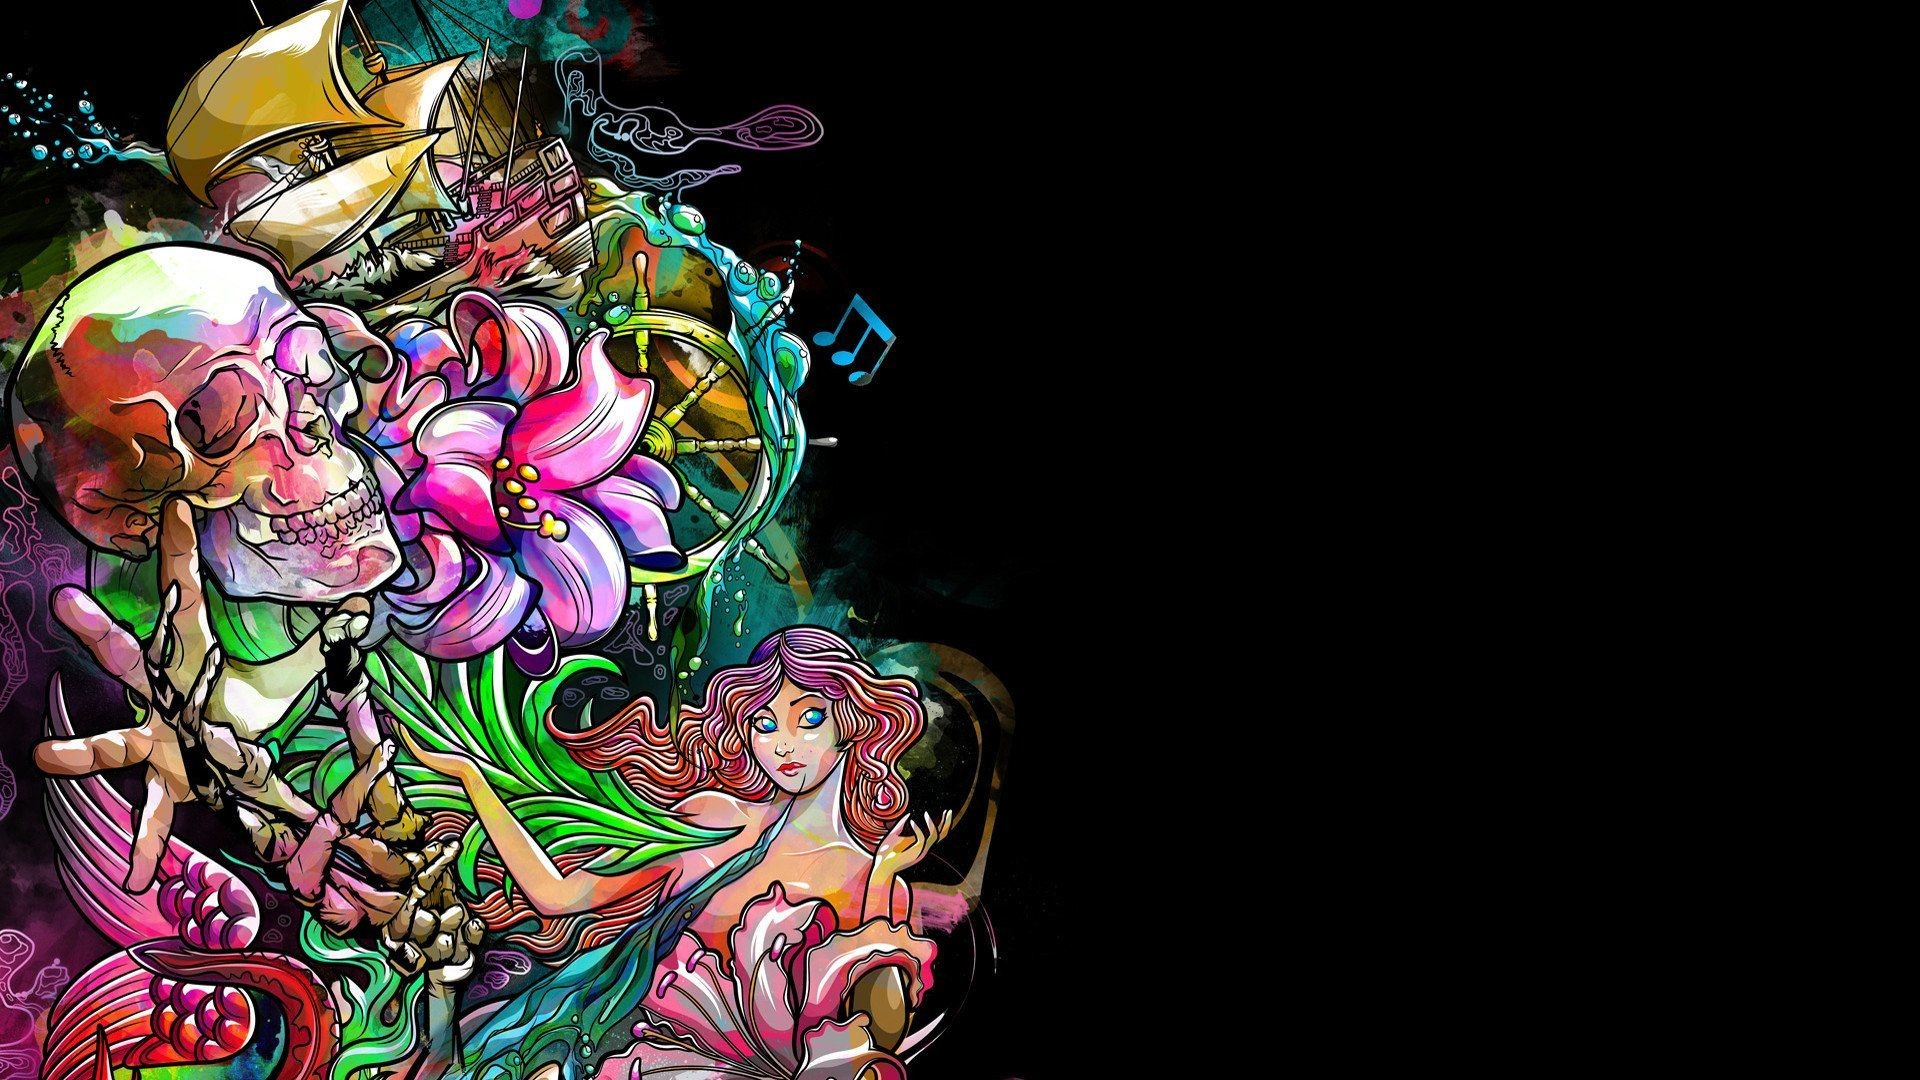 Res: 1920x1080, Dark Skull Fantasy Psychedelic Tattoo Dark Skull Fantasy Psychedelic Tattoo  is an HD desktop wallpaper posted in our free image collection of awesome  ...